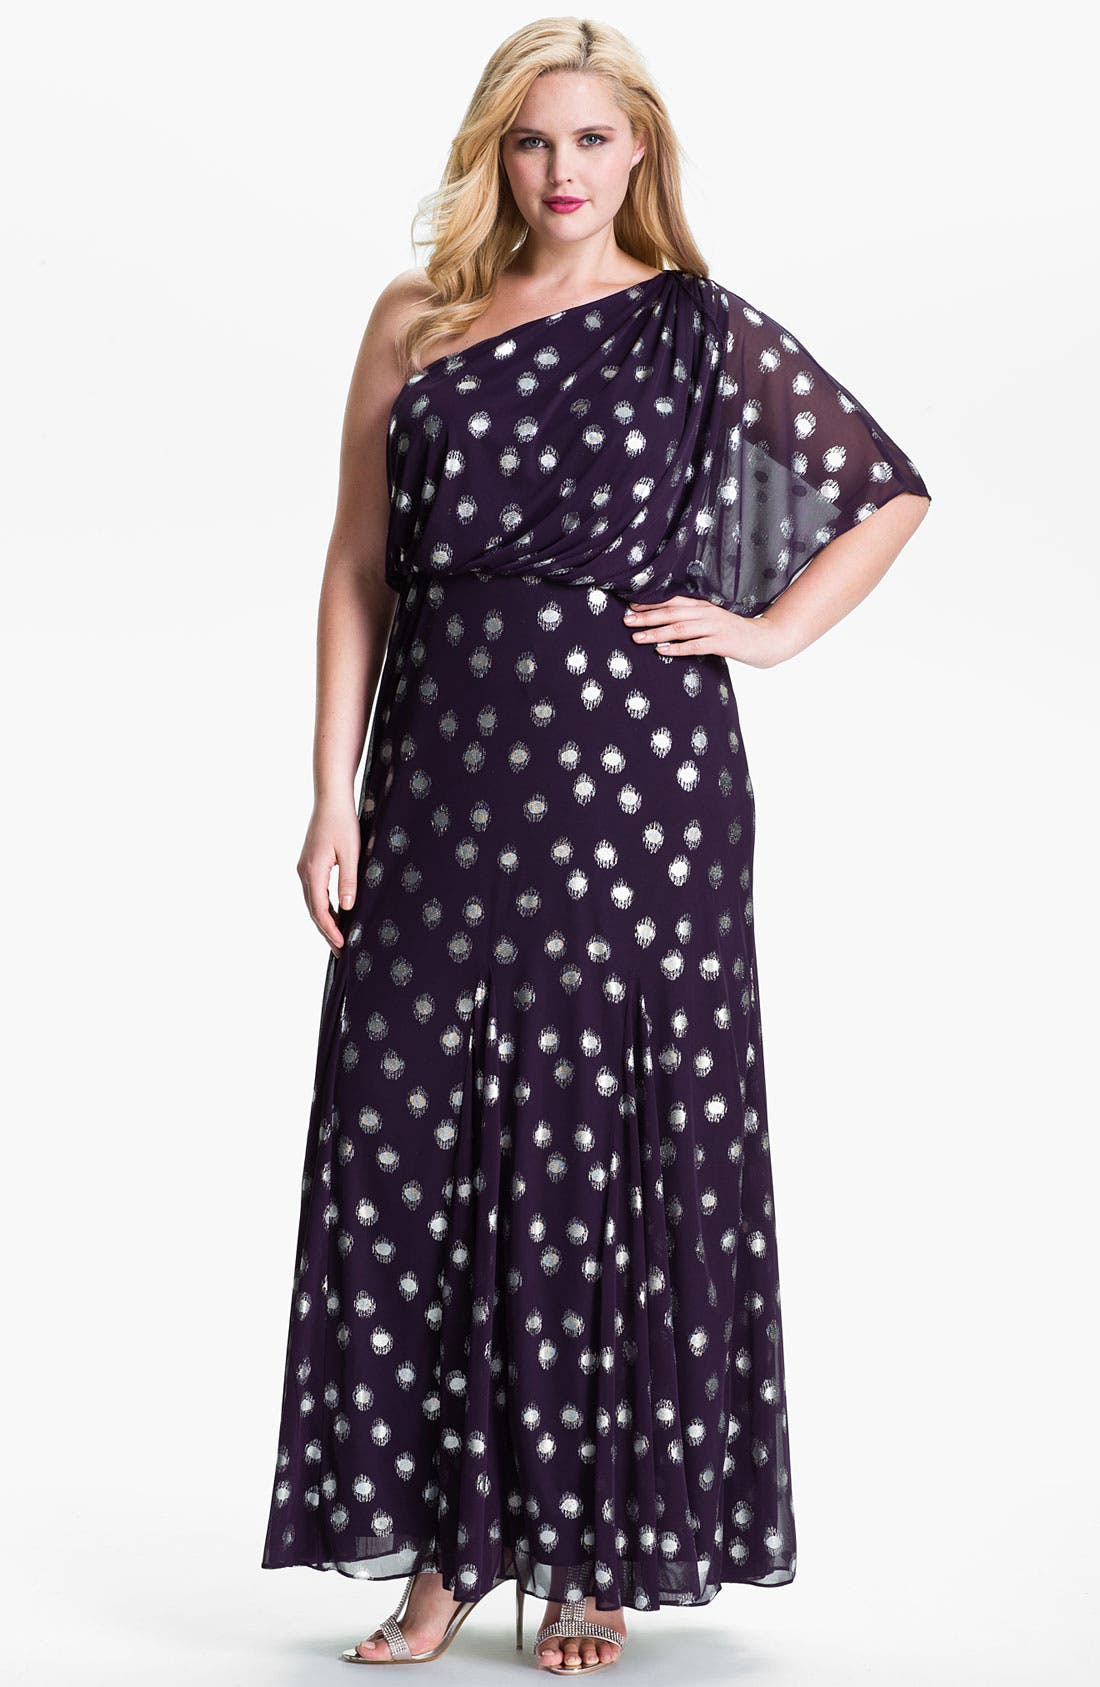 Main Image - Adrianna Papell Foil Dot One Shoulder Chiffon Dress (Plus)